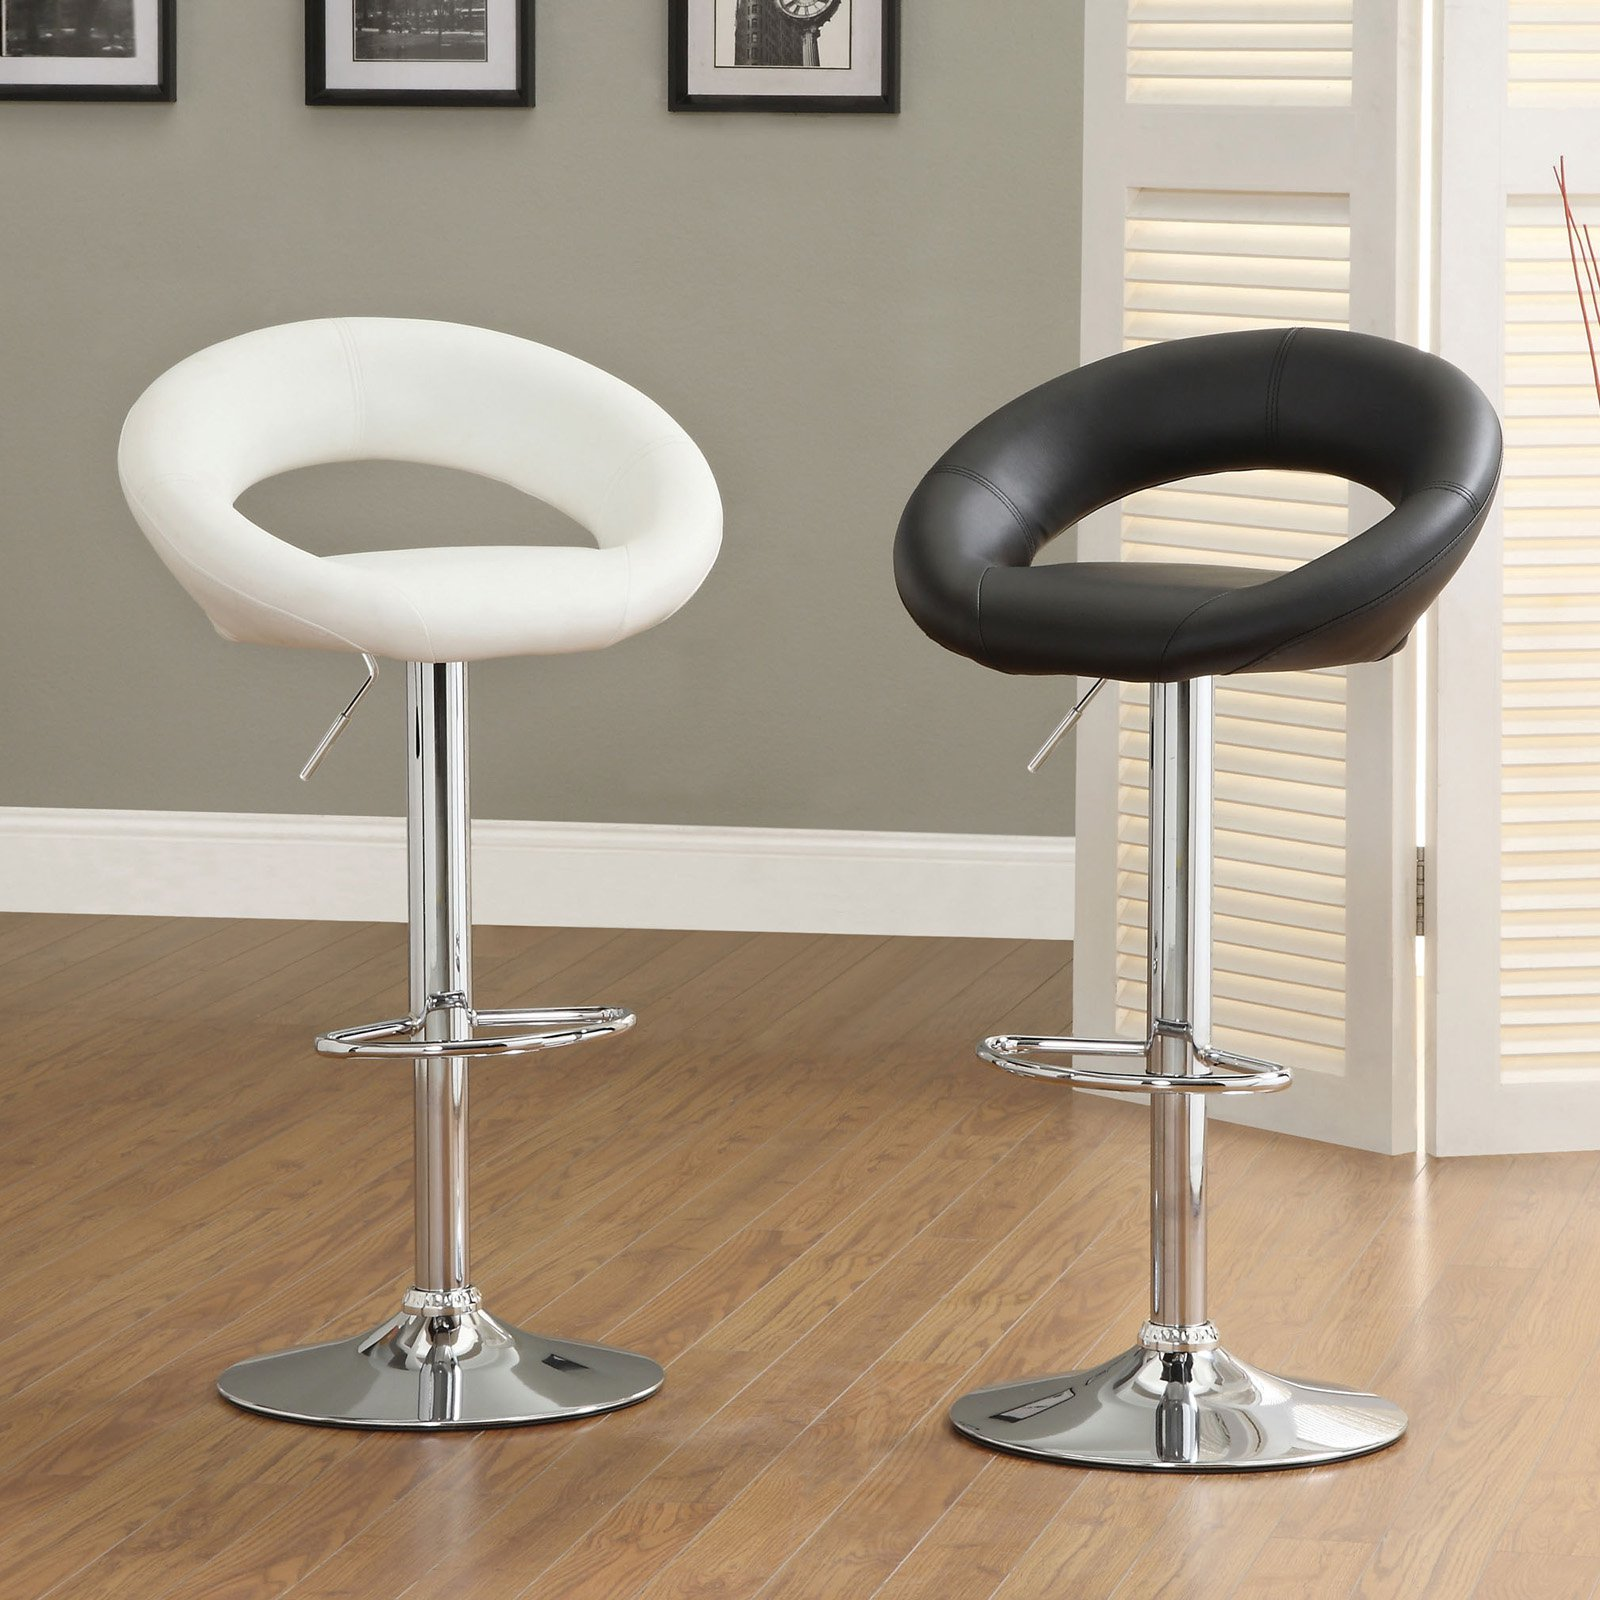 Furniture of America Galatina Adjustable Height Modern Bar Chair - 2 Piece